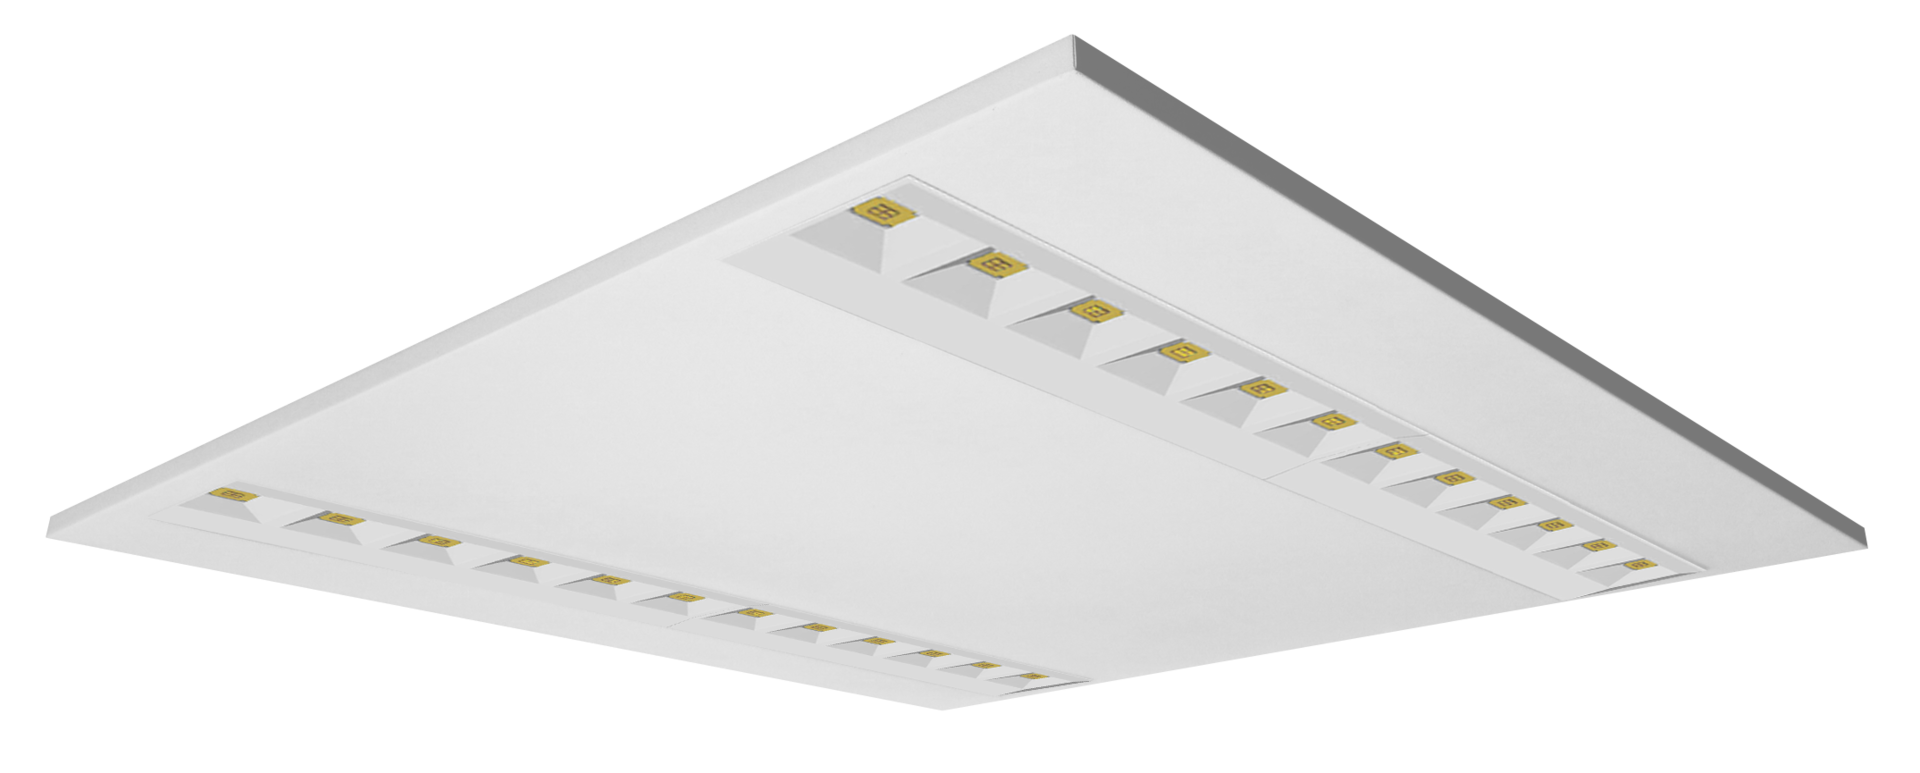 Dolight LED Panel classic drop ceiling light panels supply for hotels